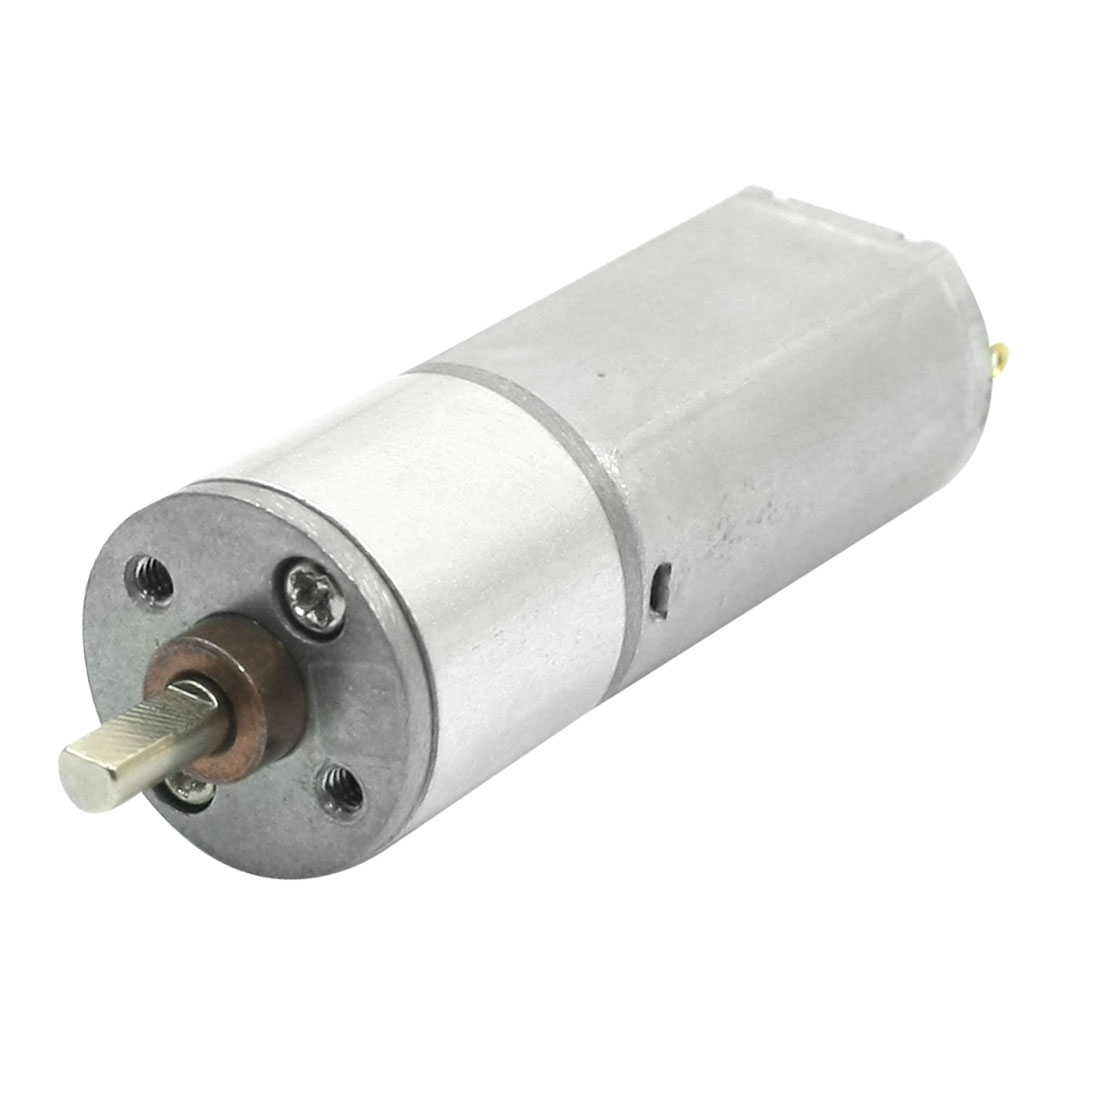 3mm Dia Drive Shaft 32rpm Output High Torque Rotary Speed Reducing Connecting Cylinder Shape Electric Geared Box Motor DC 6V